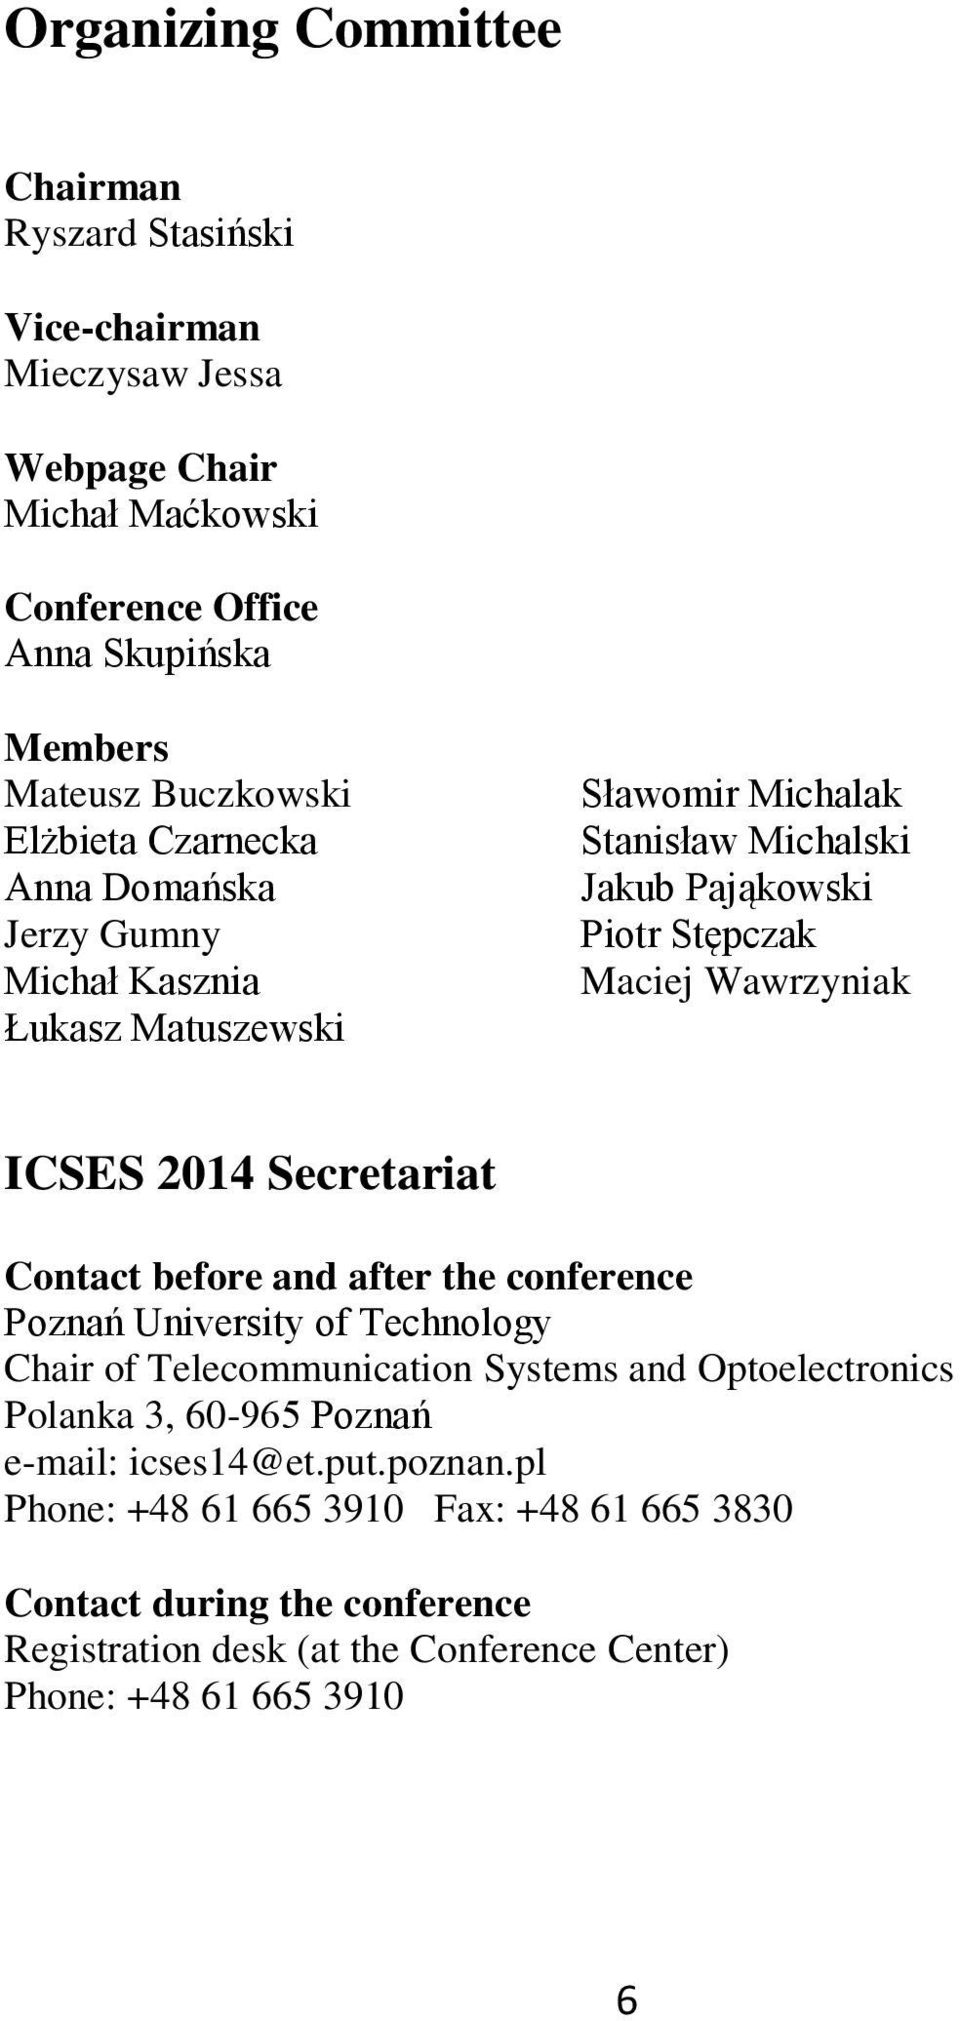 ICSES 2014 Secretariat Contact before and after the conference Poznań University of Technology Chair of Telecommunication Systems and Optoelectronics Polanka 3, 60-965